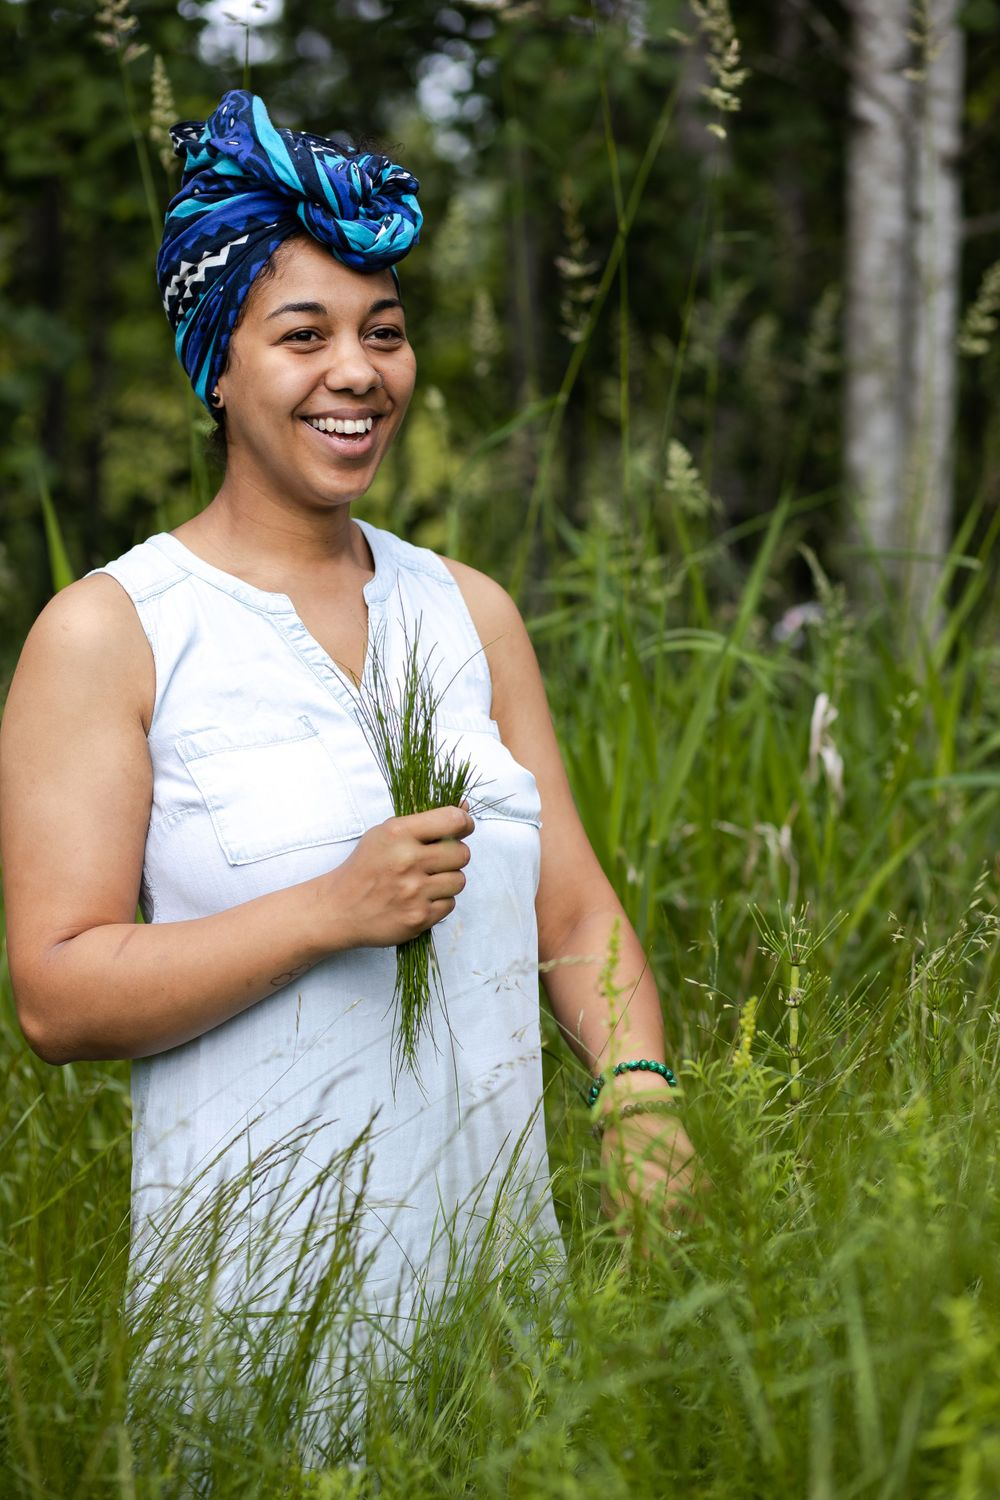 PNW Apothecary black woman owned small business in Federal Way harvesting to make product smiling